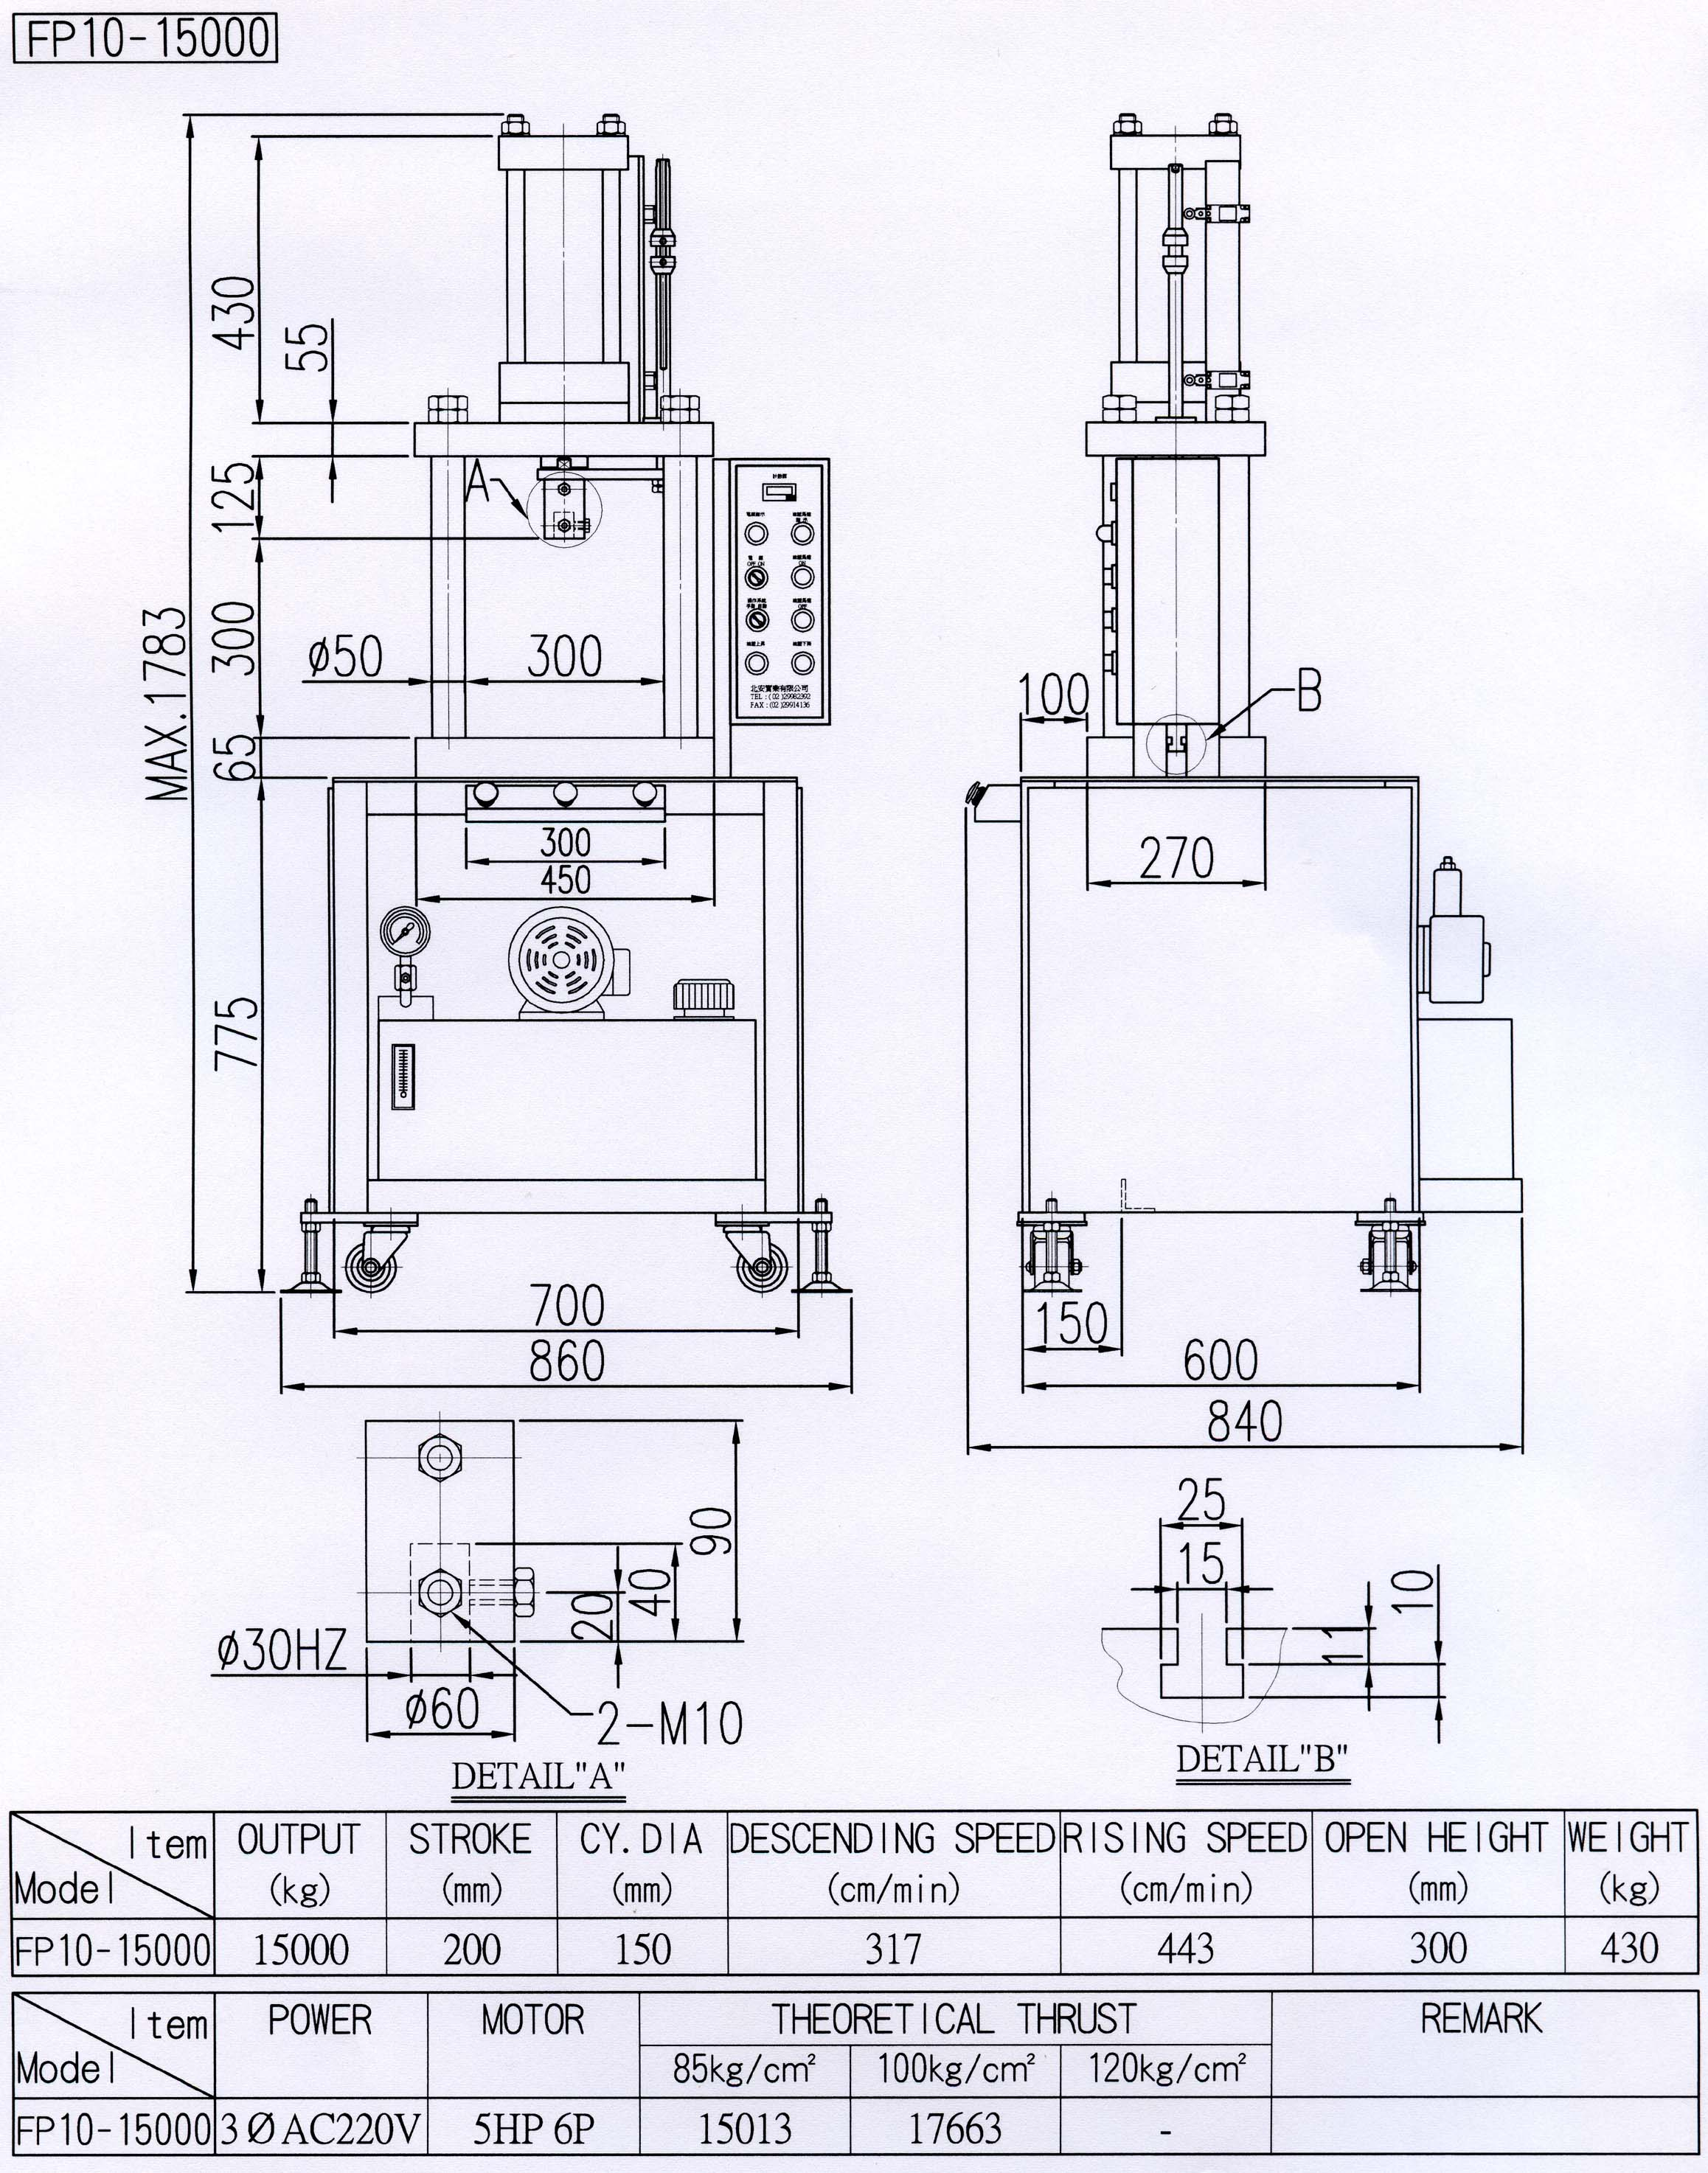 Hydraulic Press Schematic Wiring Library Cm Lodestar Diagram 4 Columns Type Fp10 15000